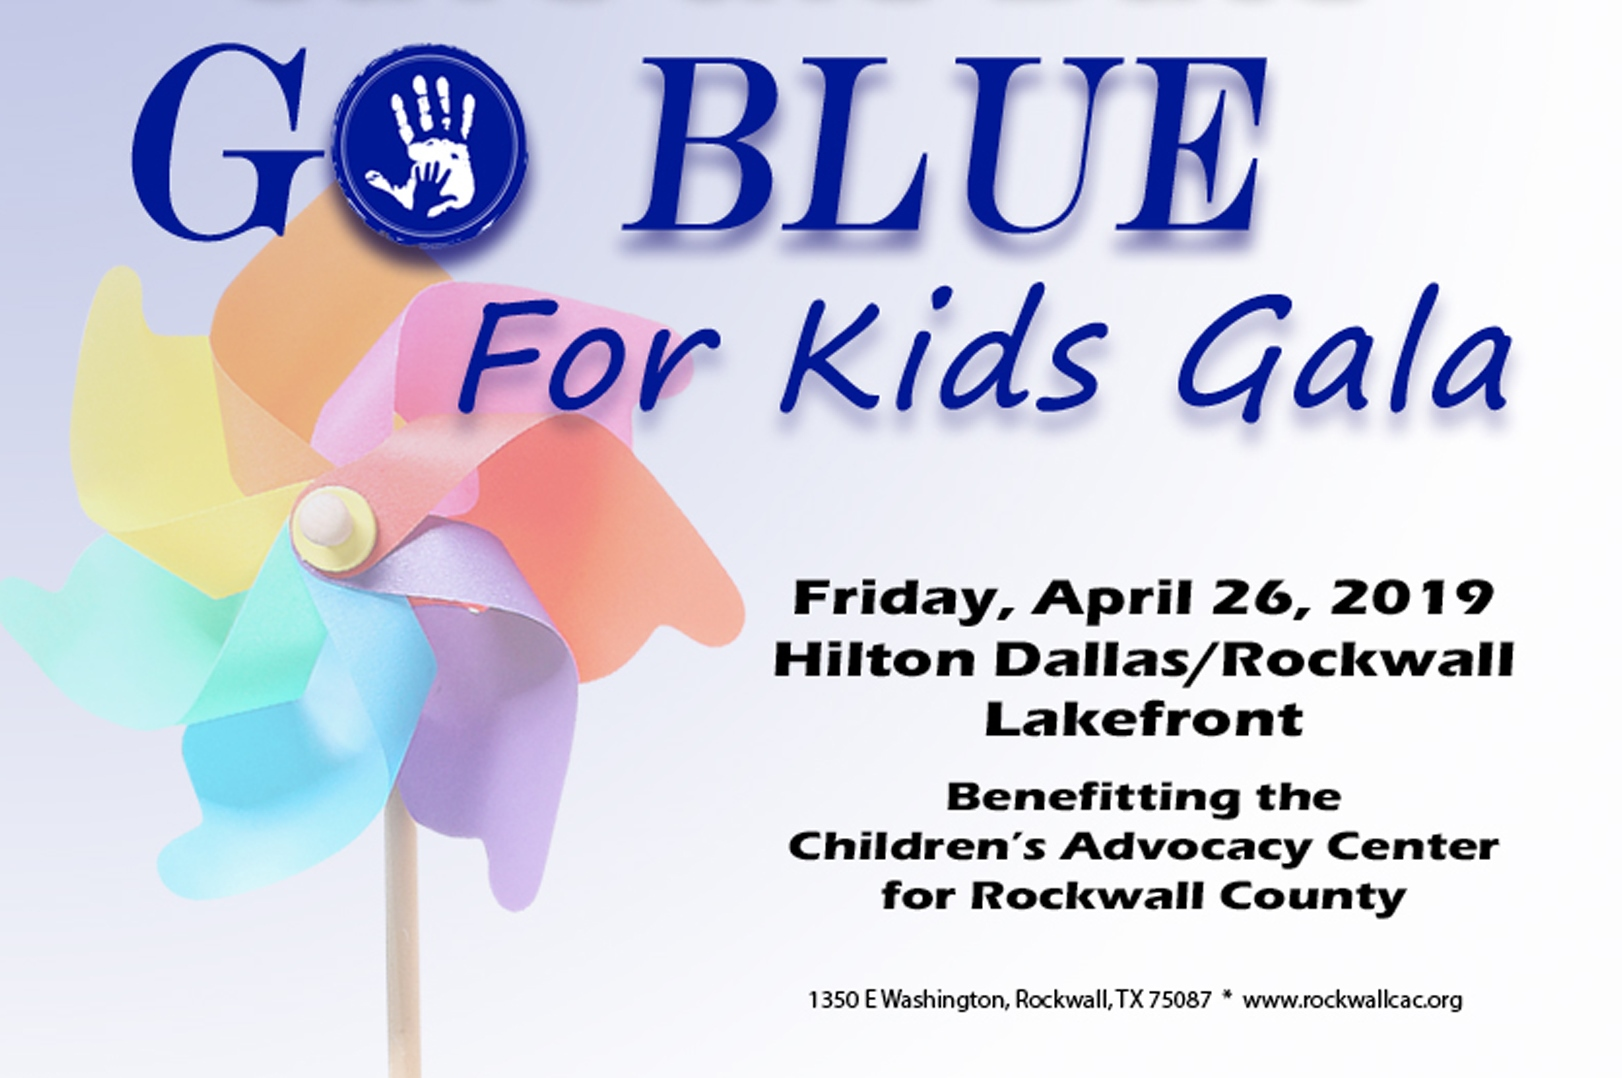 Children's Advocacy Center for Rockwall County to Host 'Go Blue for Kids' Gala